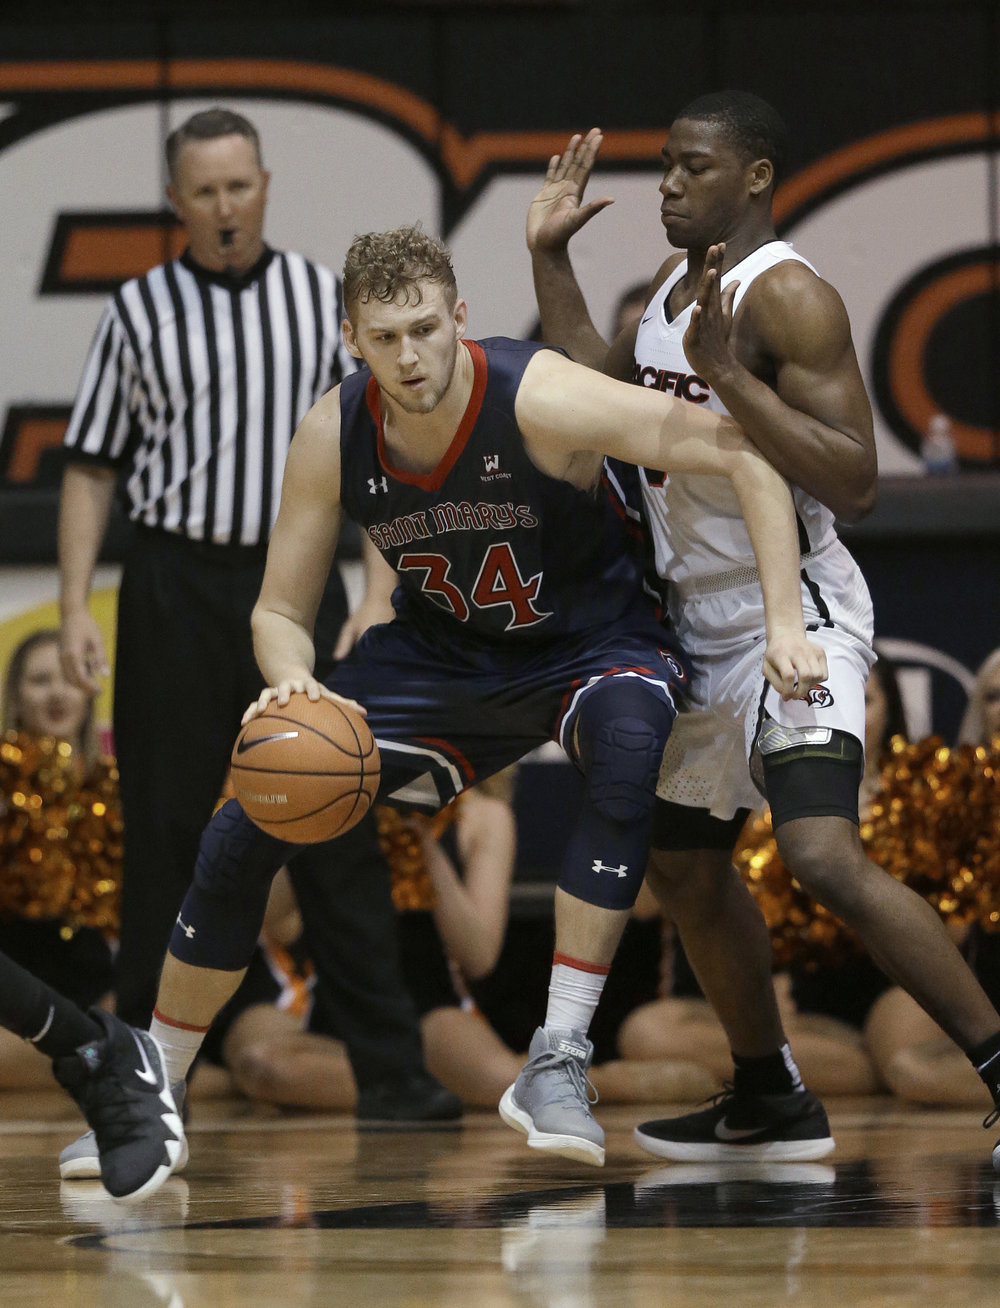 Saint Mary's center Jock Landale, left, goes to the basket against Pacific forward Anthony Townes during the second half of an NCAA college basketball game Saturday, Jan. 20, 2018, in Stockton, Calif. (Rich Pedroncelli/AP)